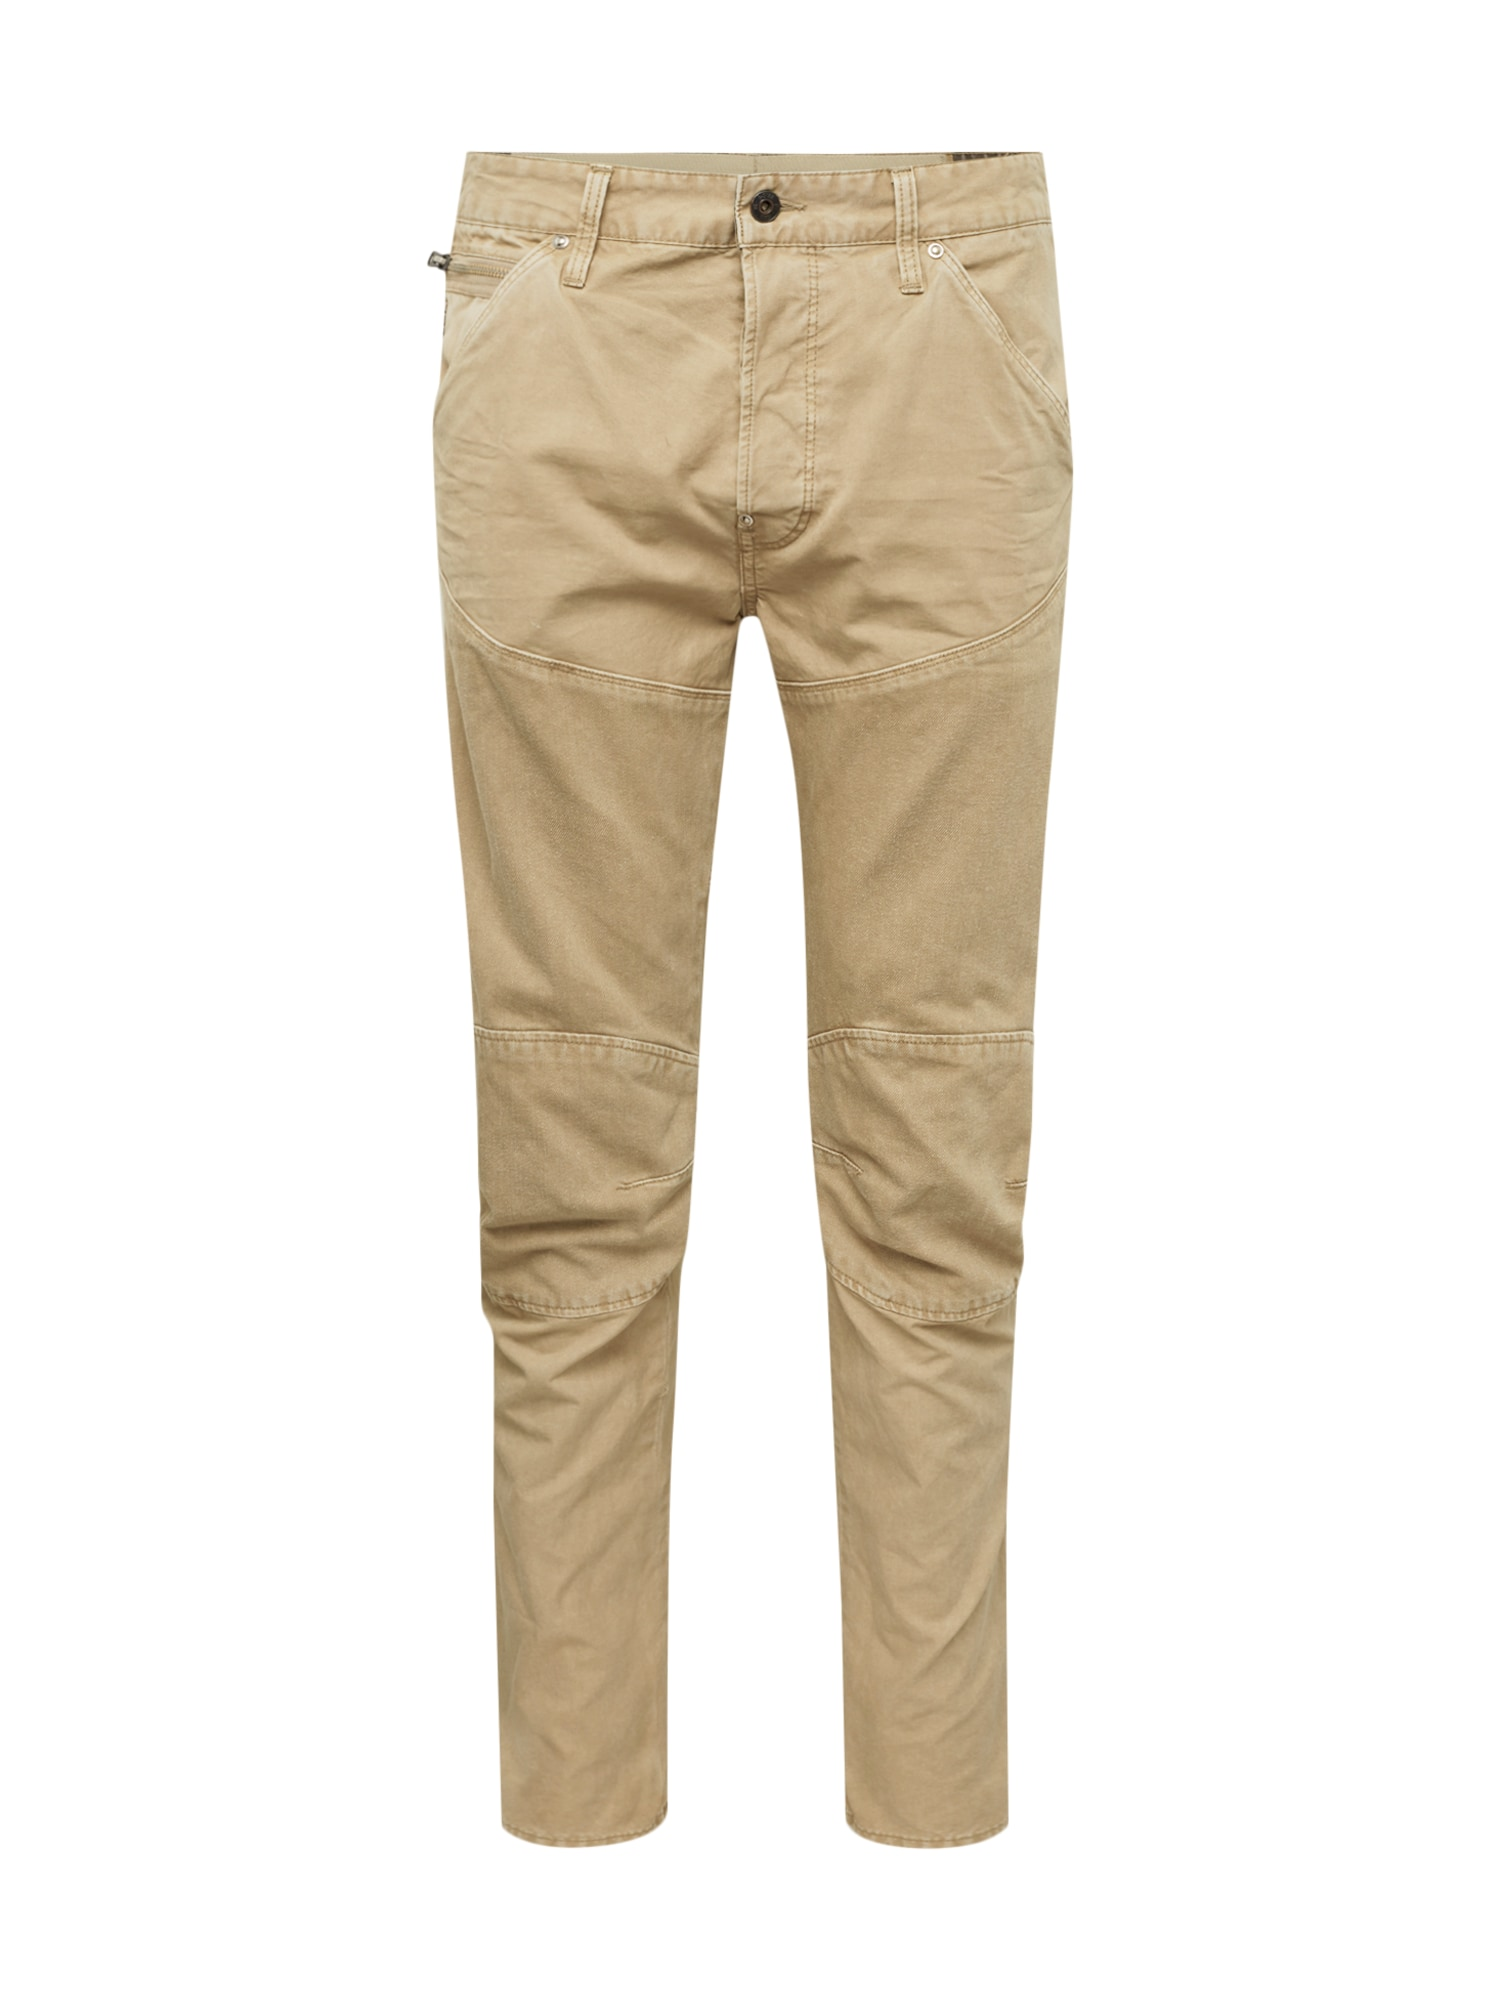 Kalhoty 5620 3d strike straight tapered pm coj khaki G-STAR RAW